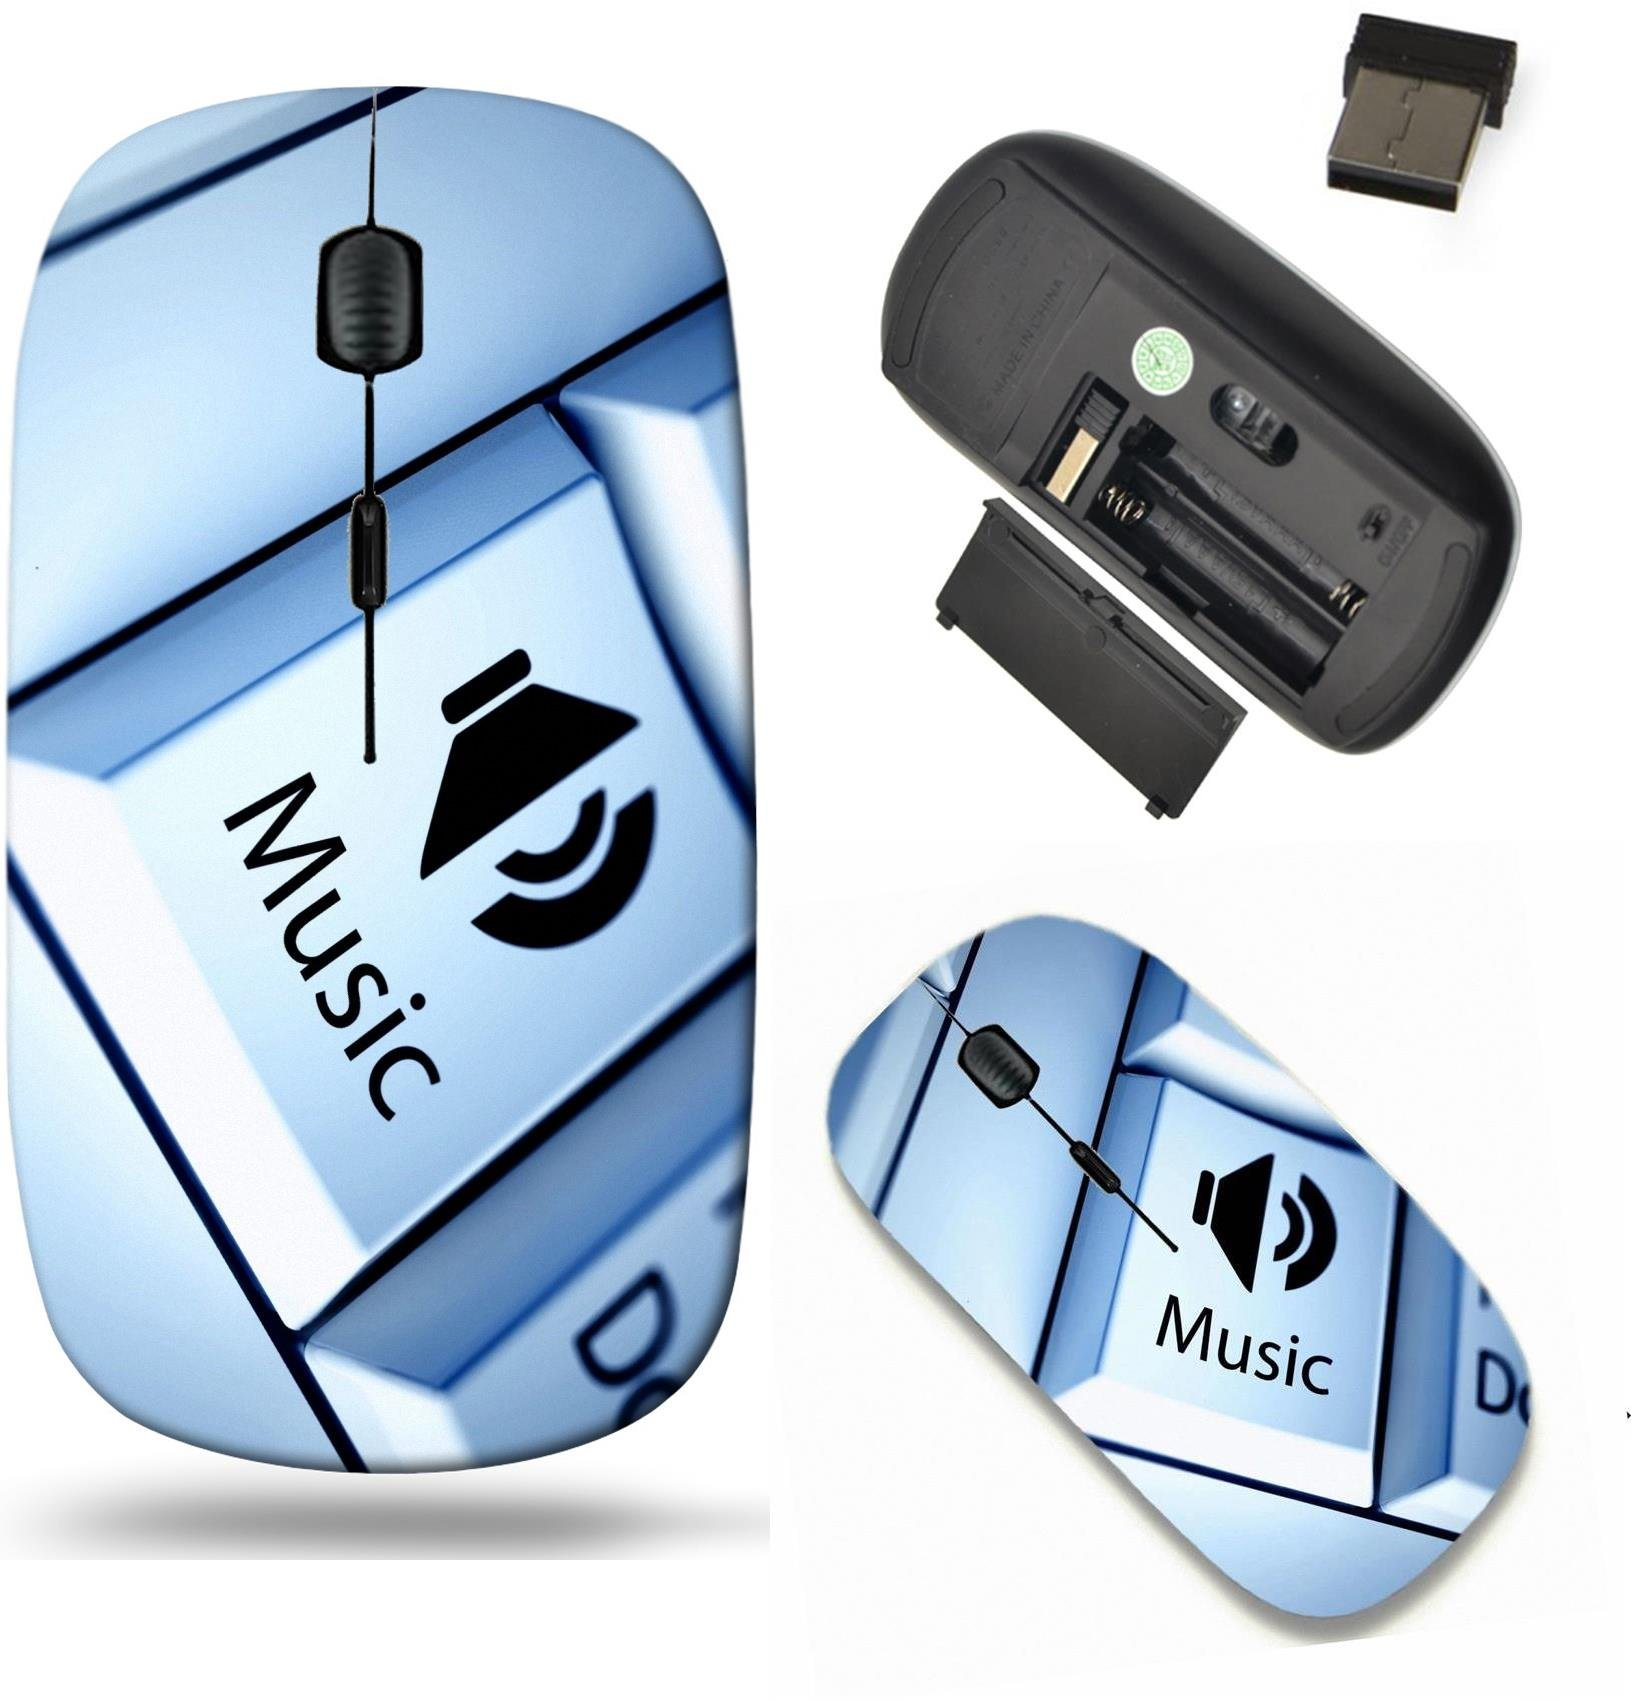 Liili Wireless Mouse Travel 2.4G Wireless Mice with USB Receiver, Click with 1000 DPI for notebook, pc, laptop, computer, mac book Keyboard with Music button entertainment concept IMAGE ID 25615932